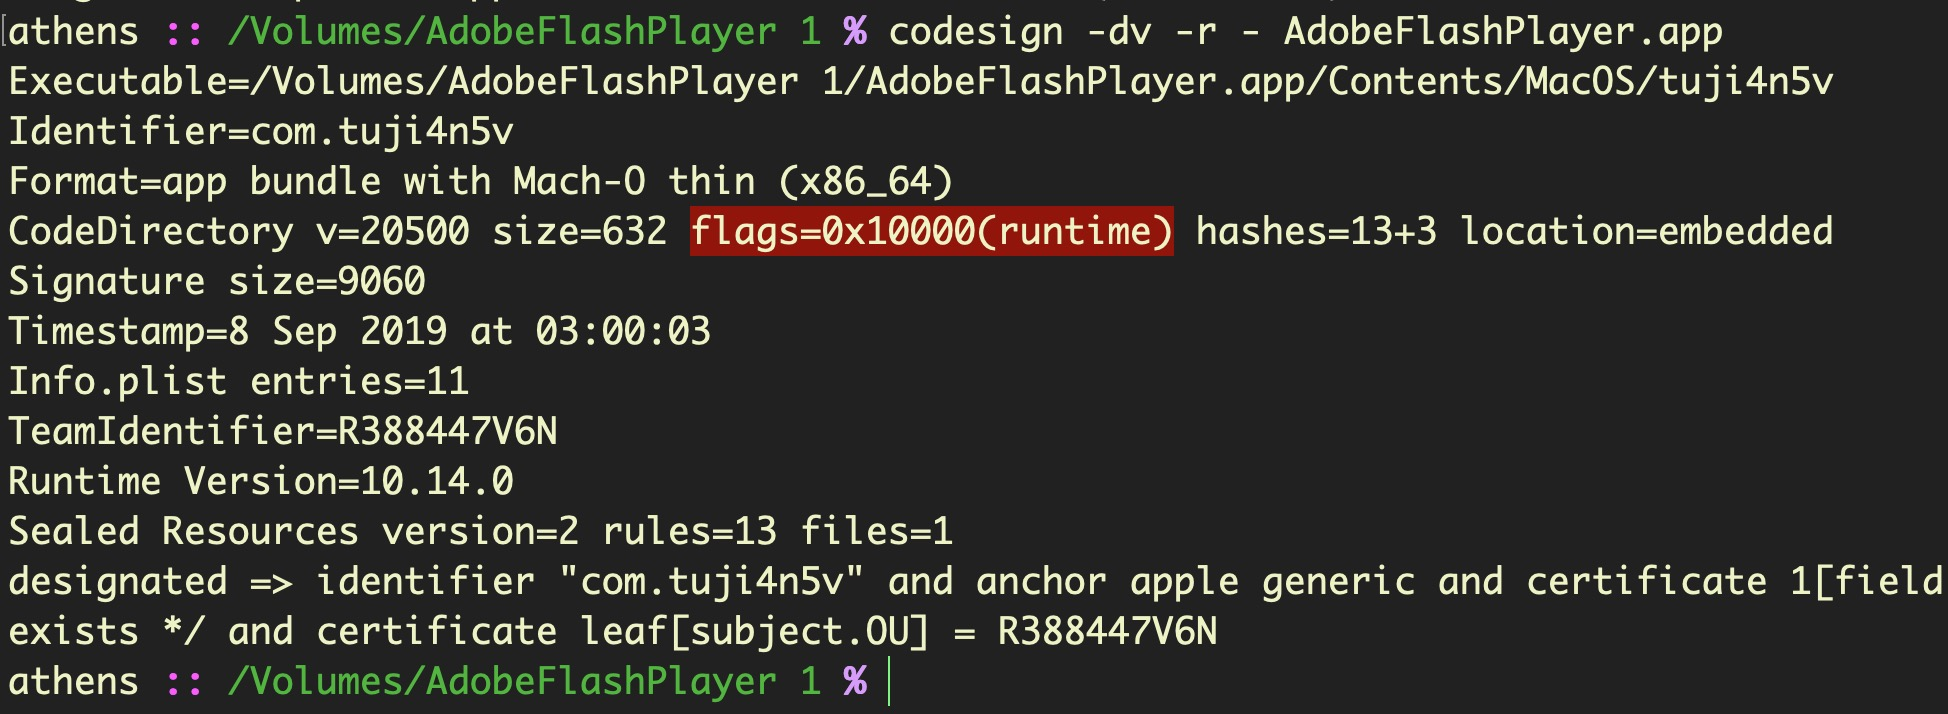 image of malware with hardened runtime